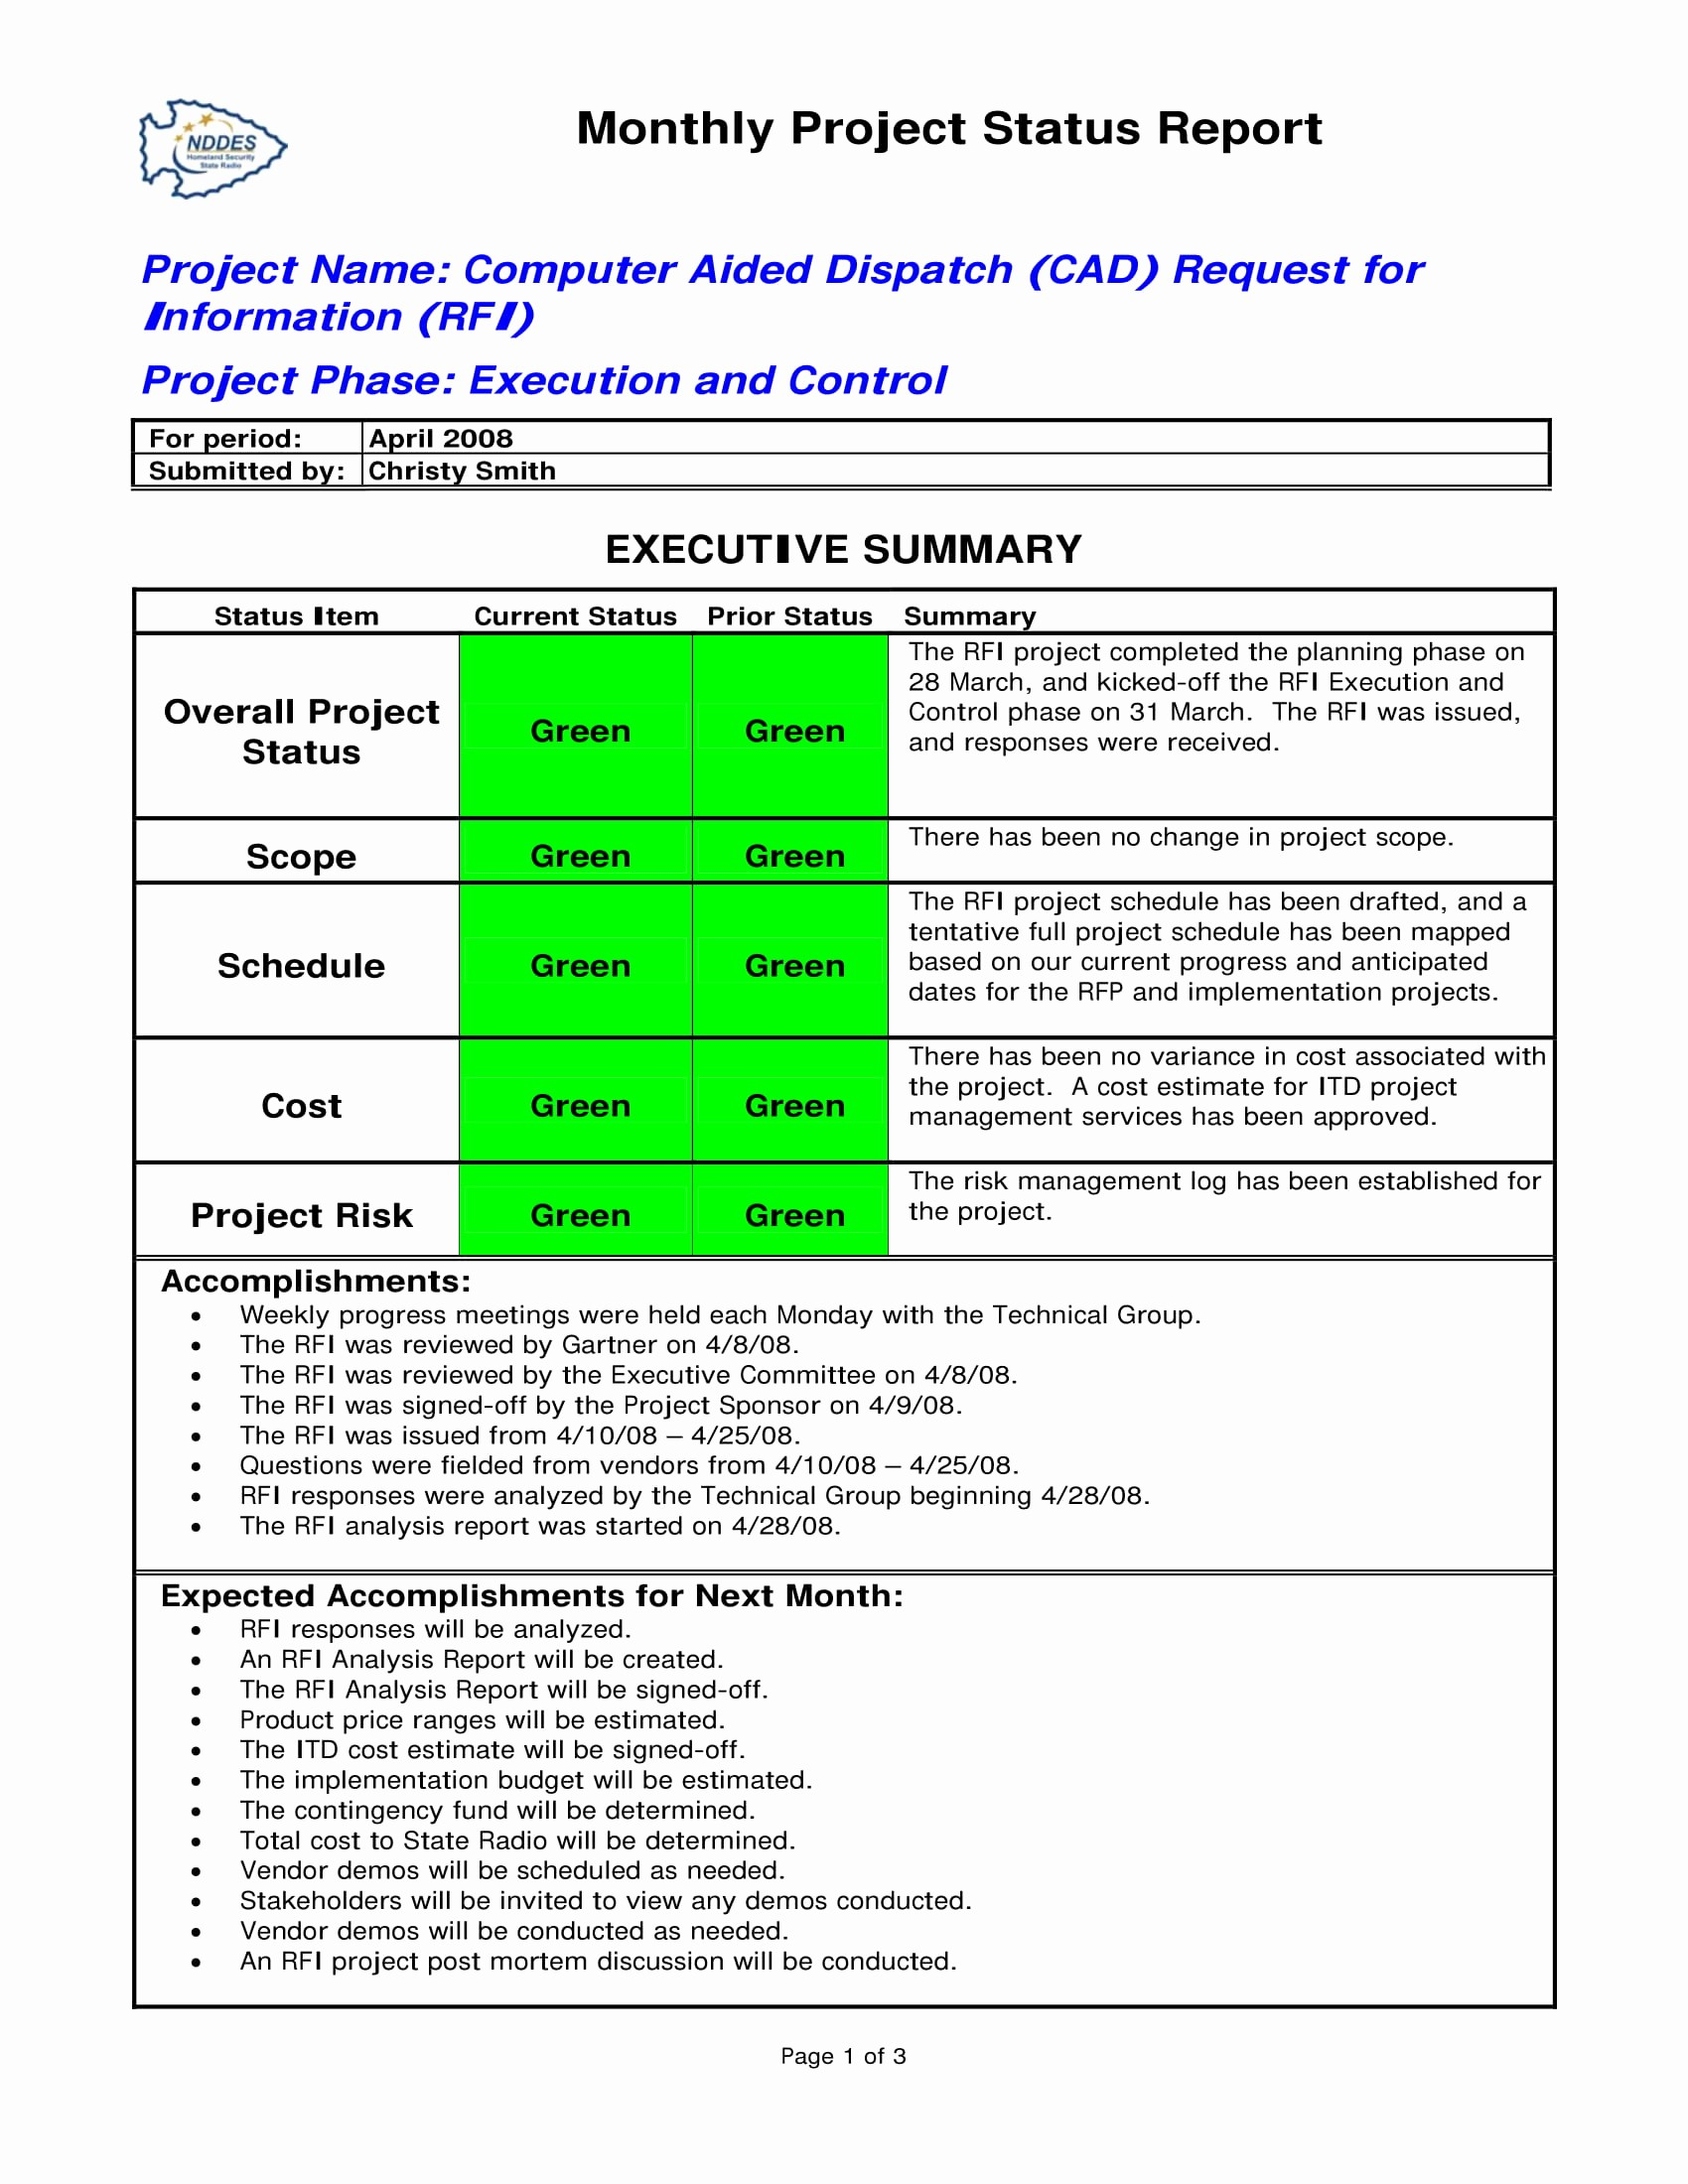 Project Management Status Report Example Awesome 9 Status Report Examples Doc Pdf